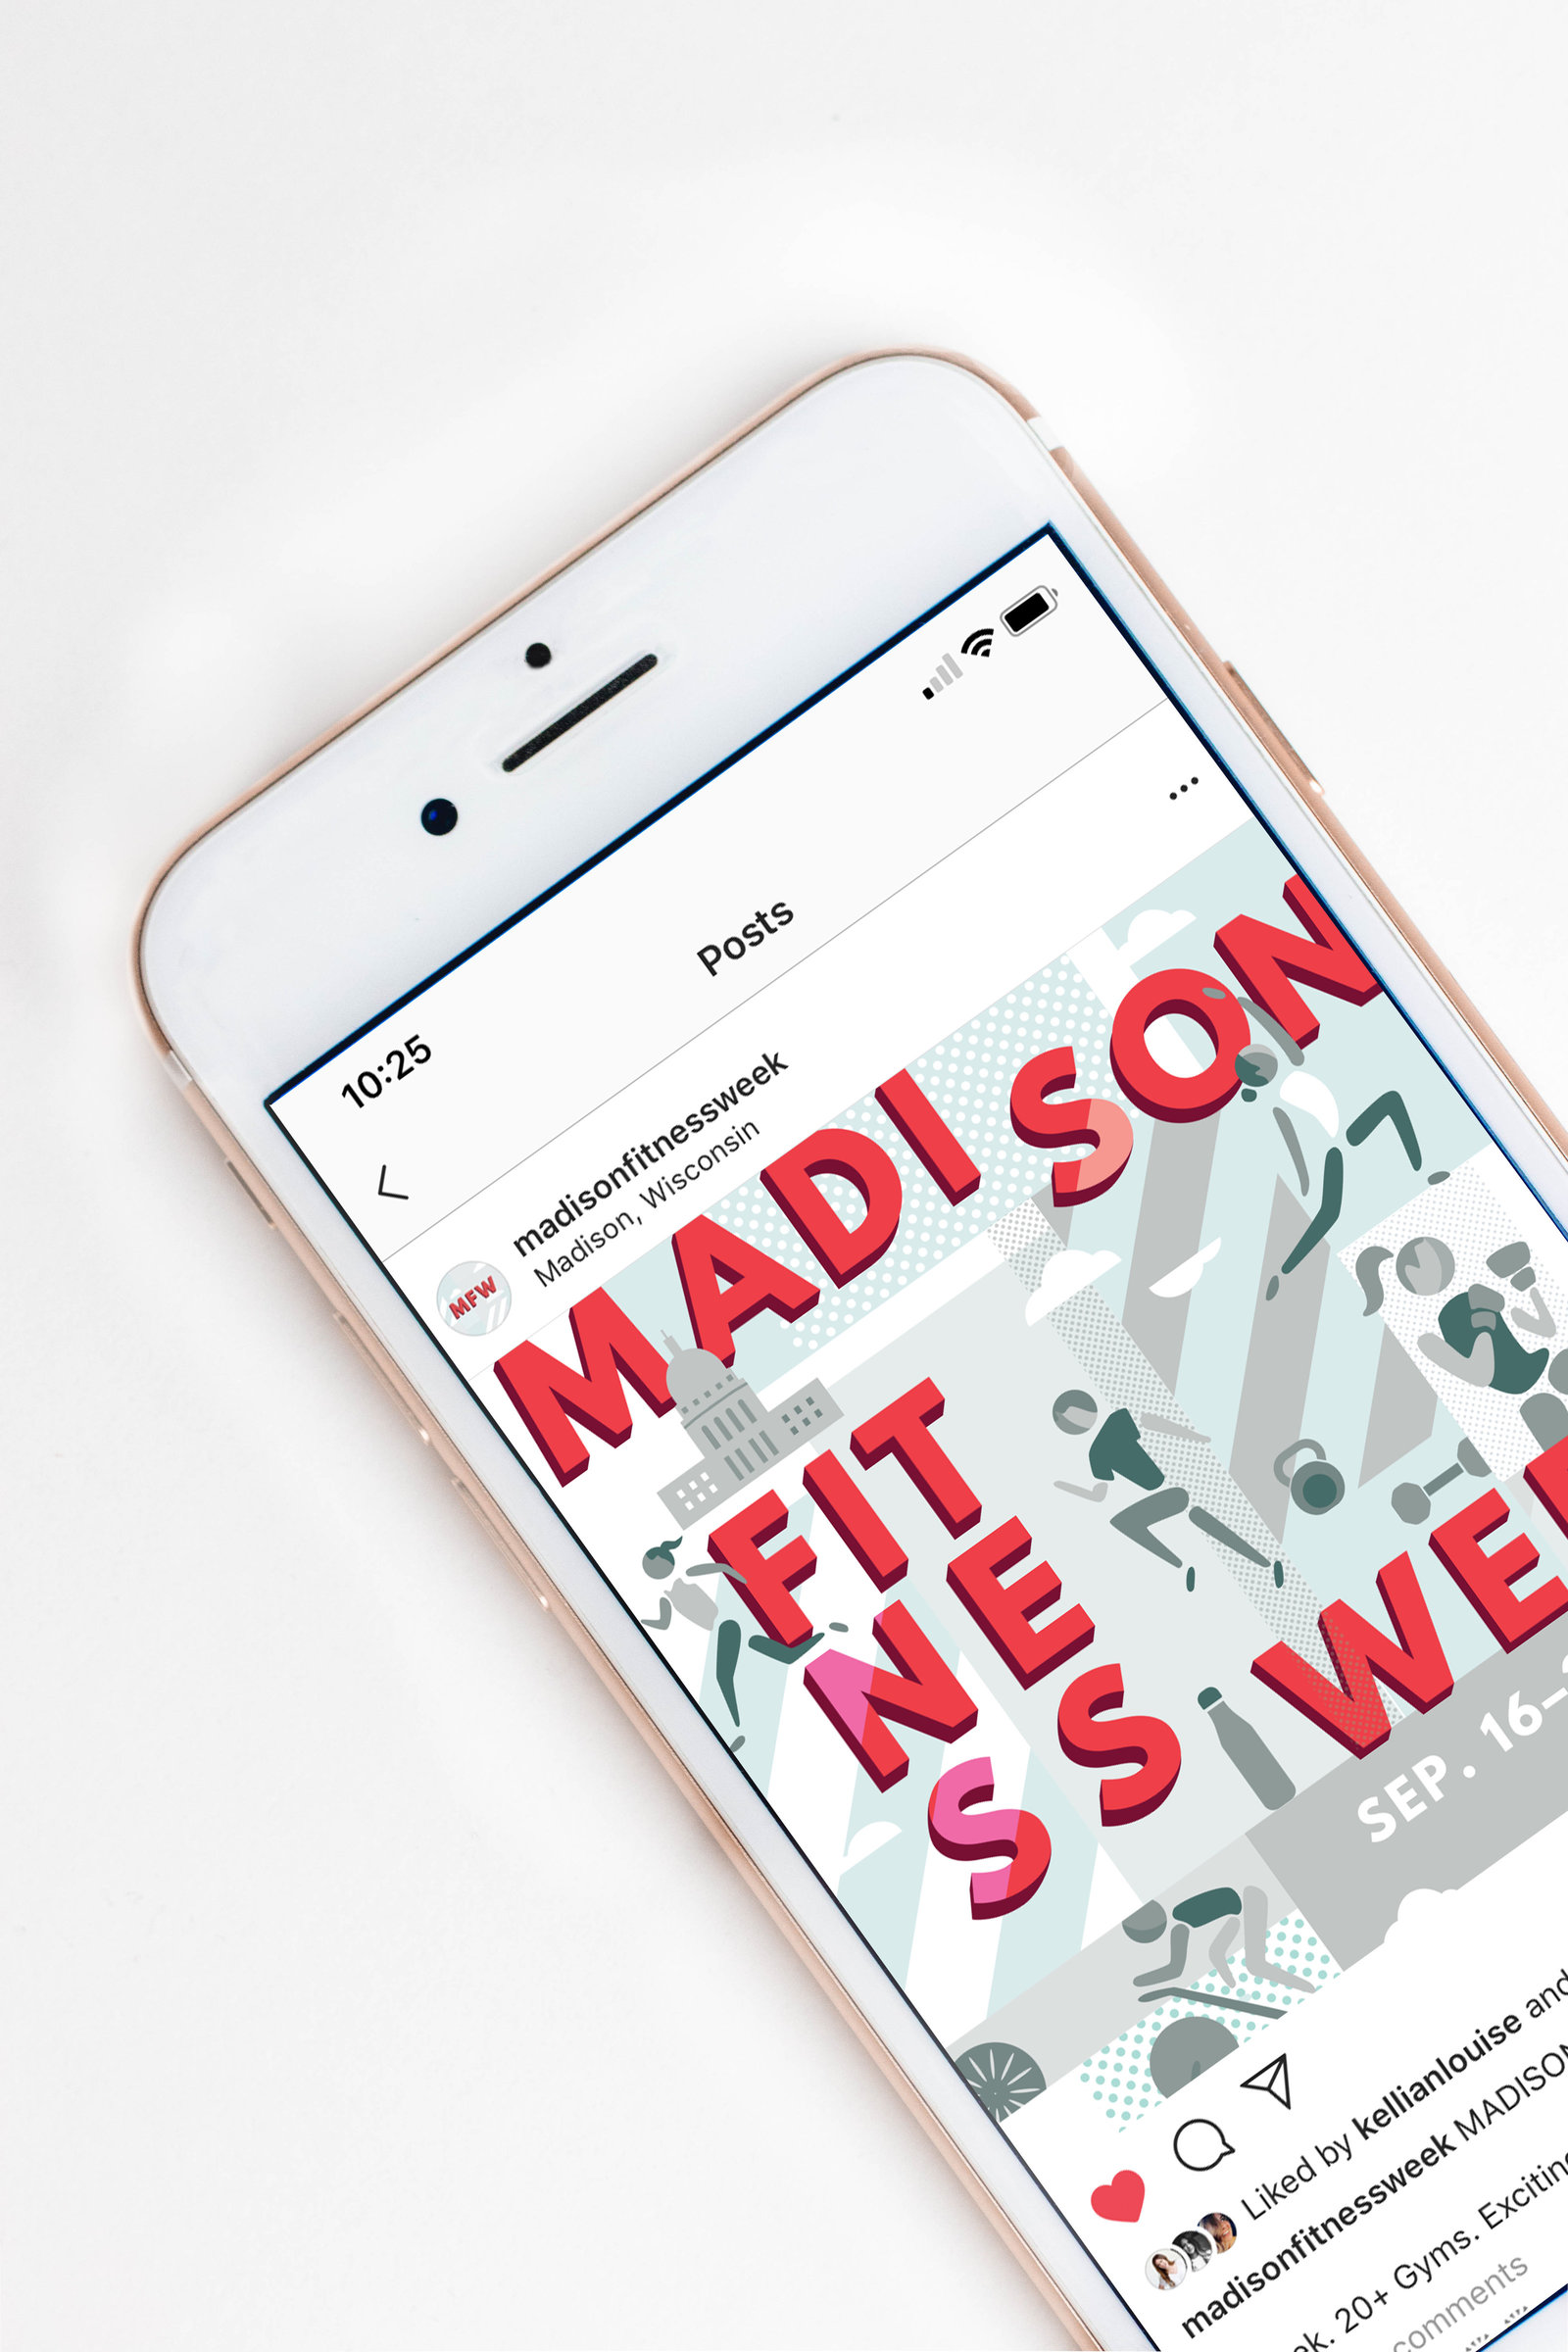 Instagram design  for Madison Fitness Week by Christie Evenson, graphic designer and illustrator